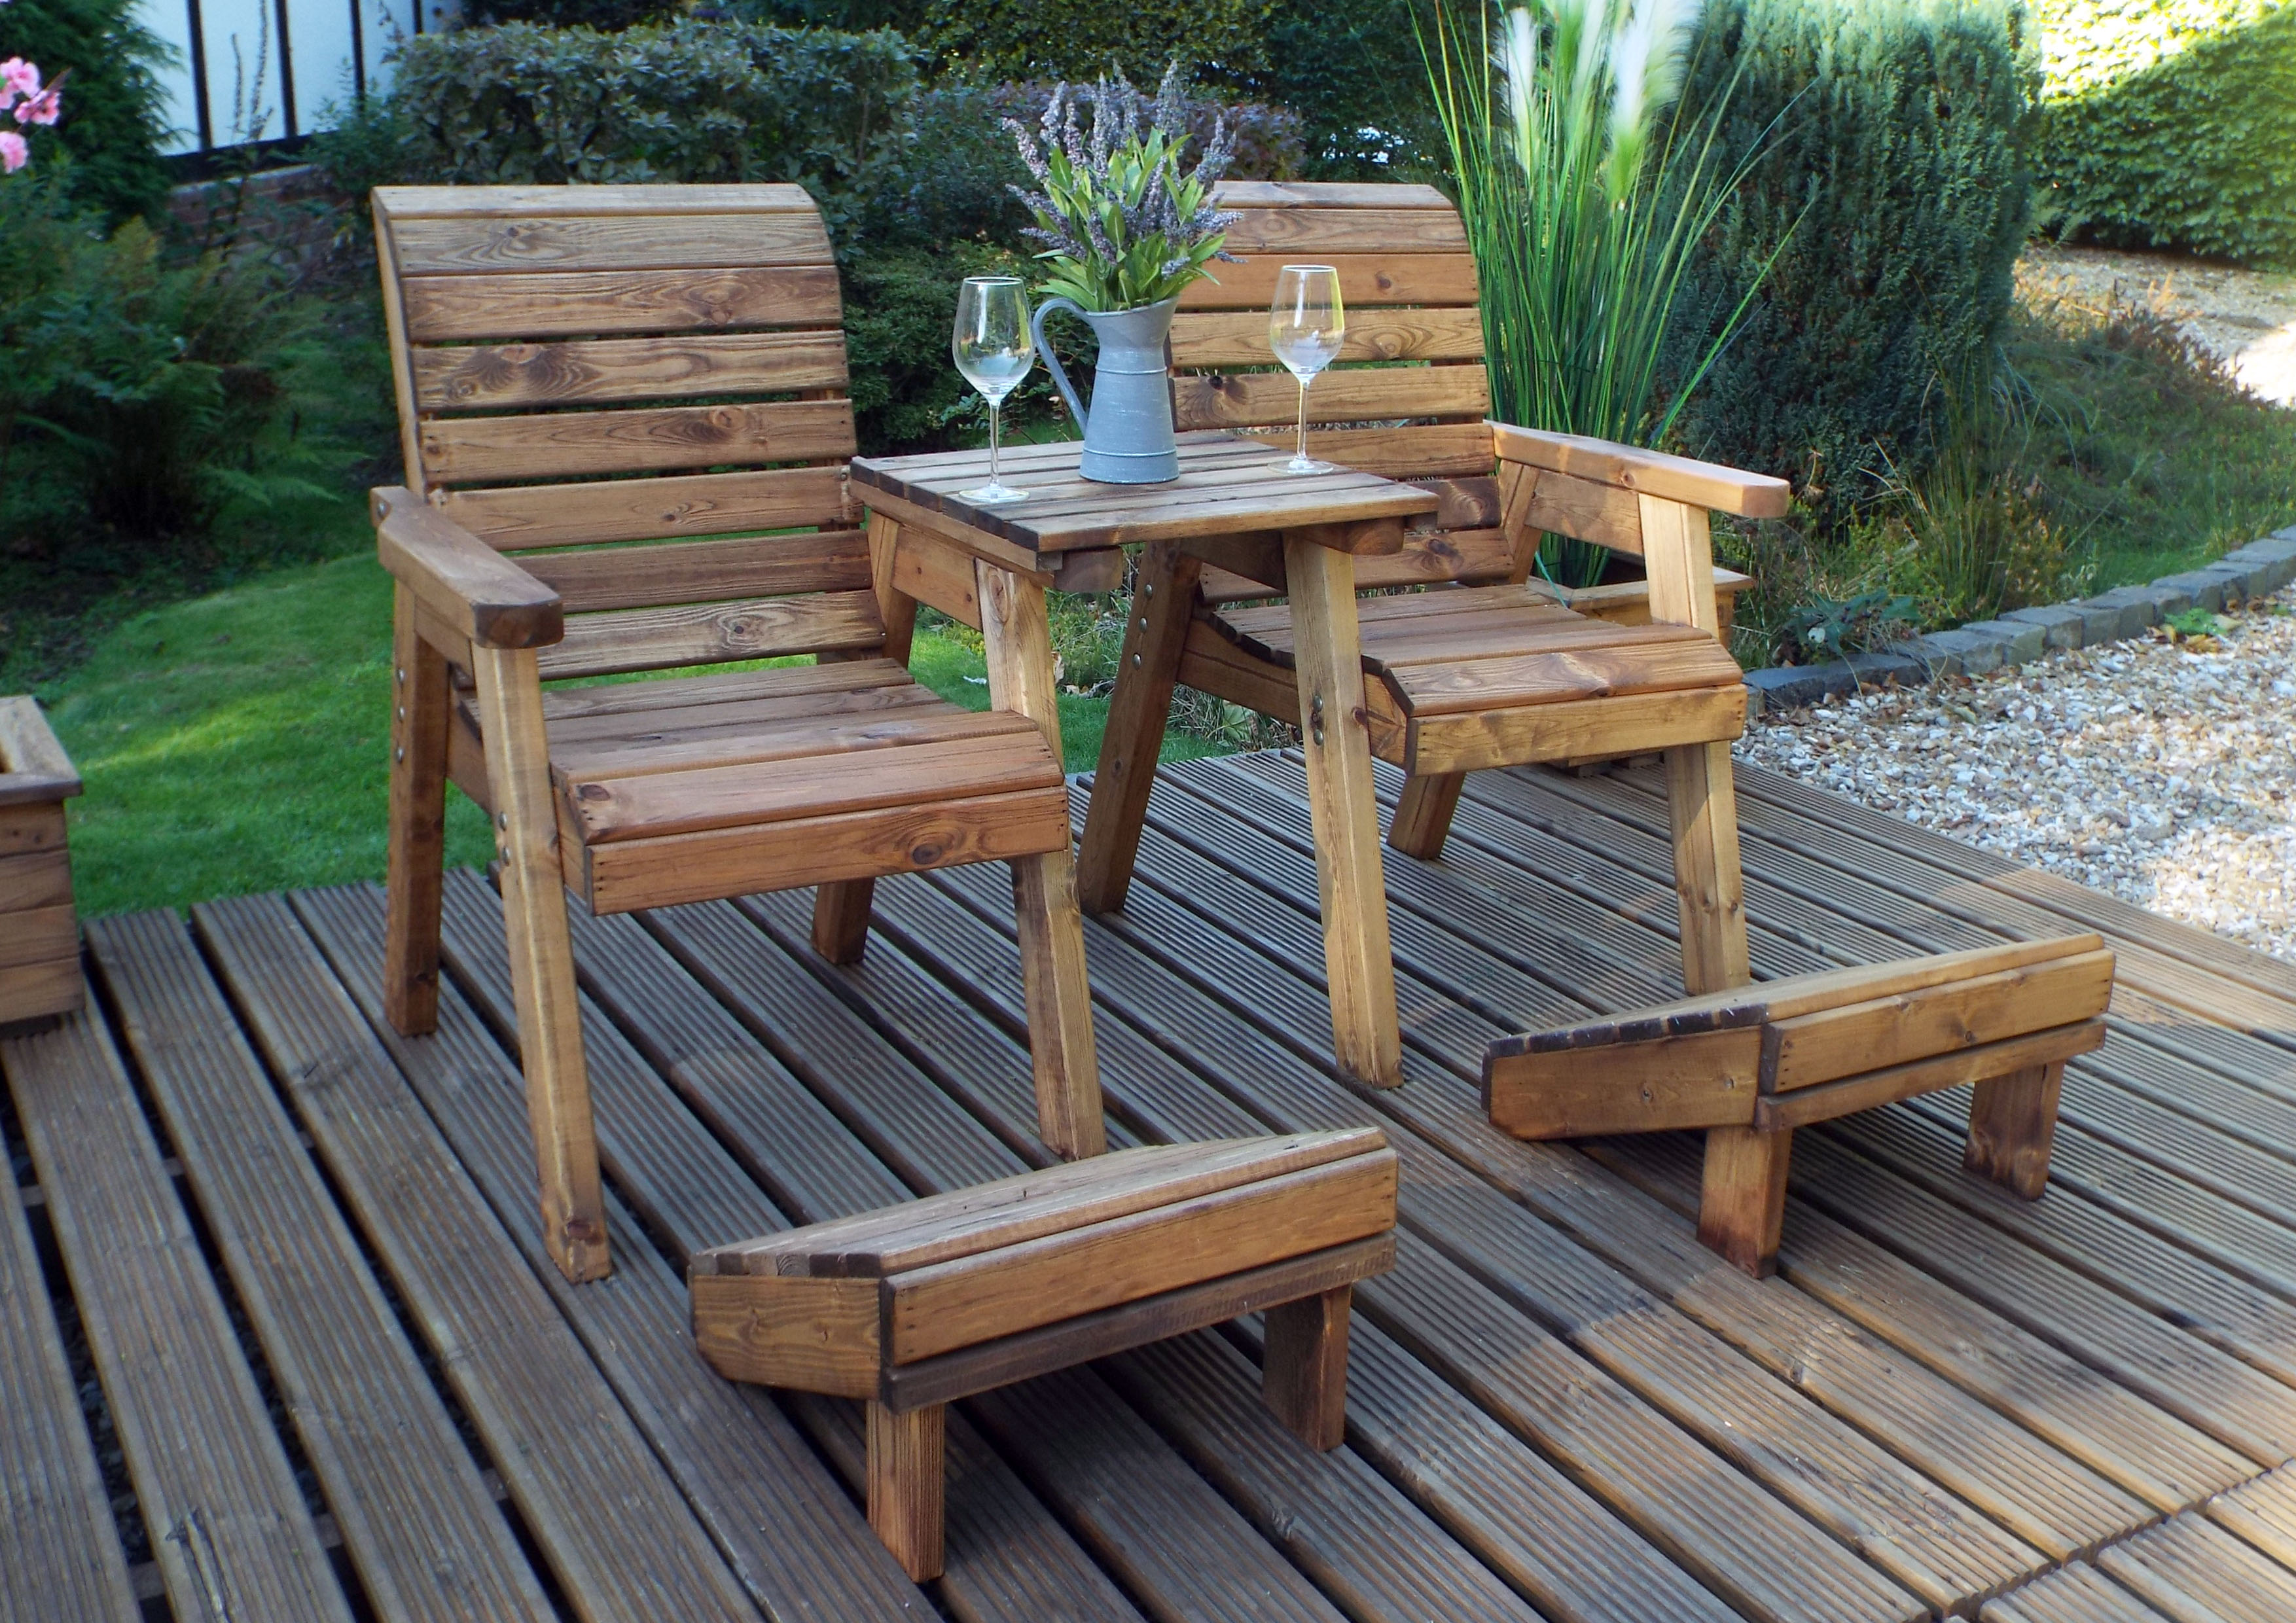 Hand Made Chunky Rustic Wooden Garden Chair Furniture Set ...